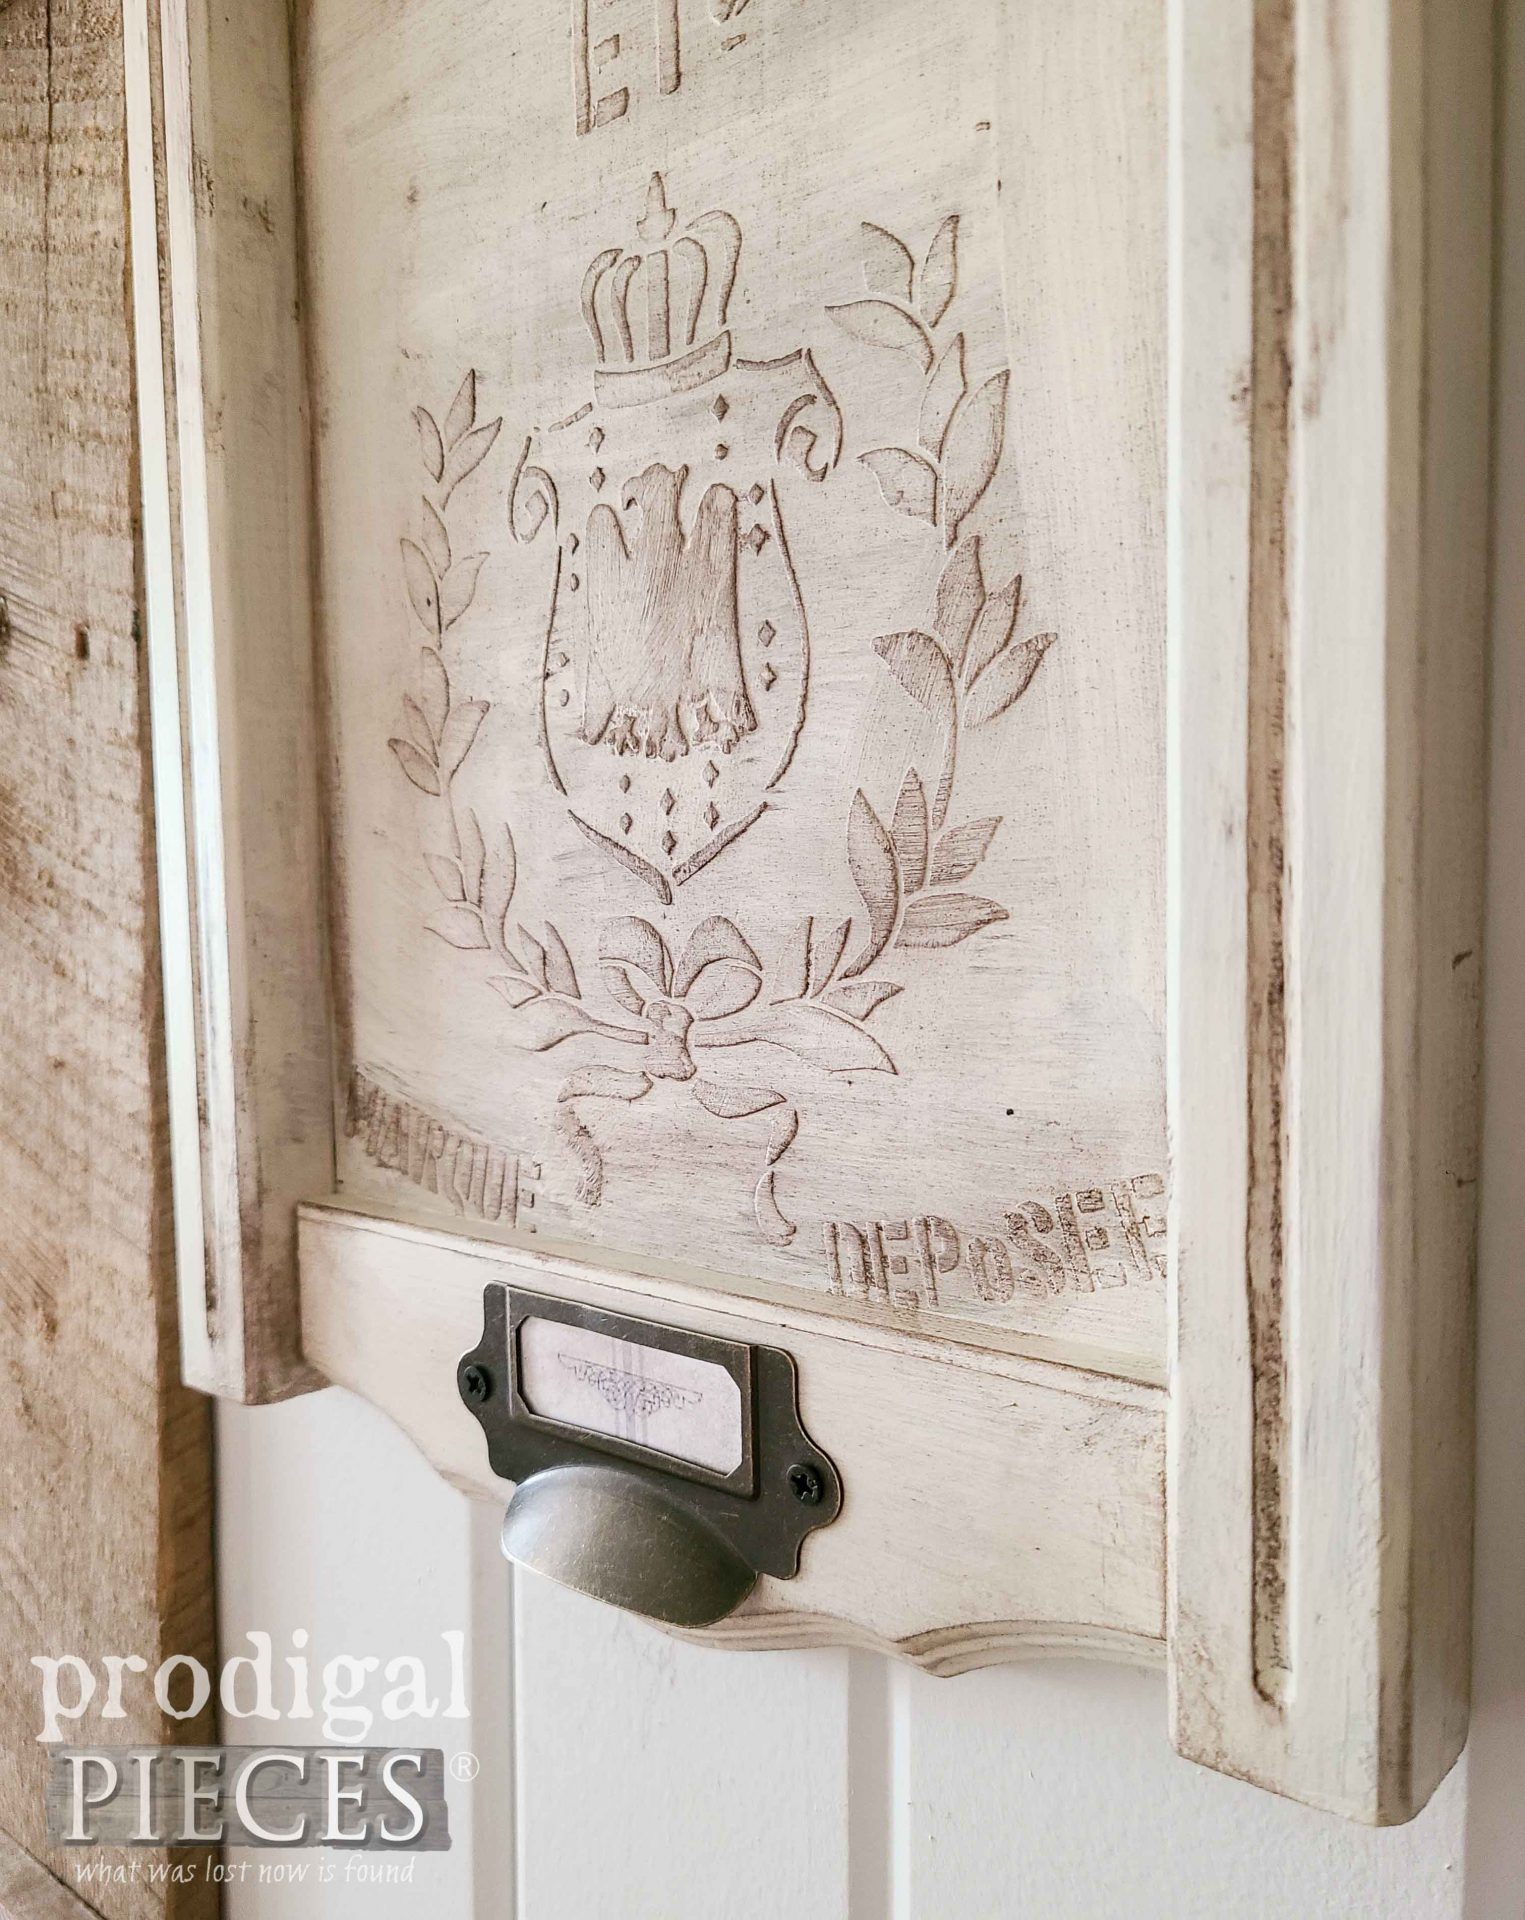 DIY Stencil Embossing with Video Tutorial by Larissa of Prodigal Pieces | prodigalpieces.com #prodigalpieces #farmhouse #diy #emboss #crafts #art